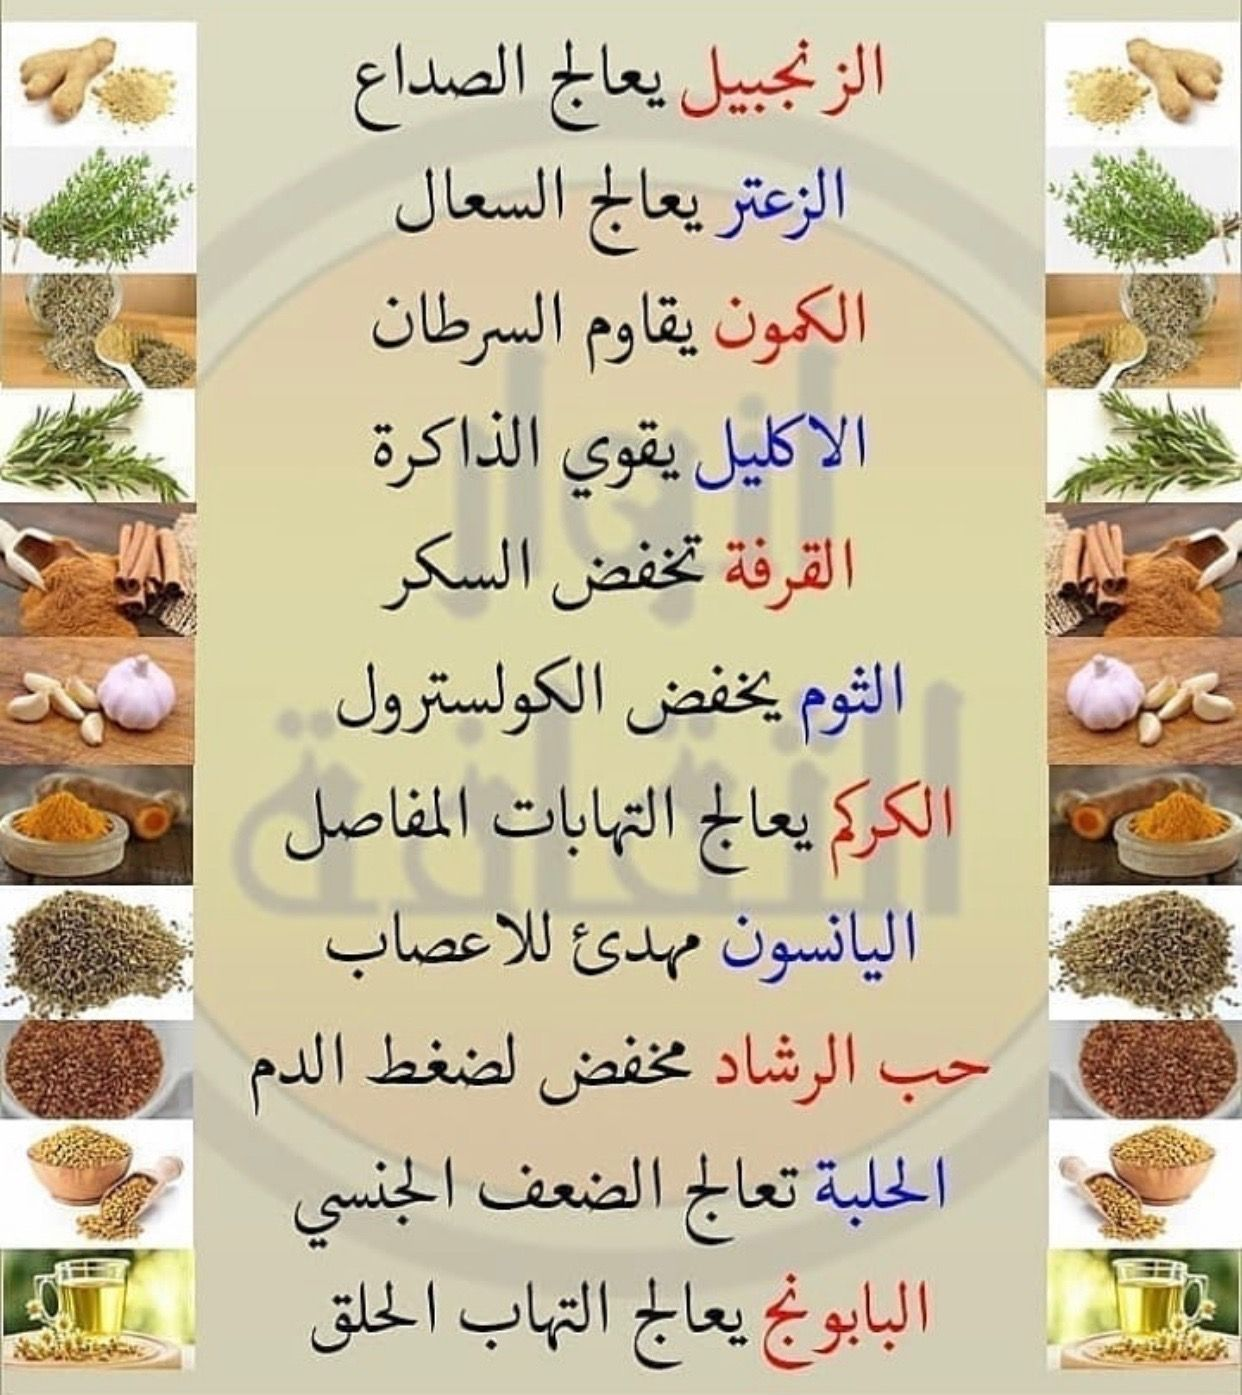 Pin By Lolea Jaaf On Your Doctor Health Fitness Nutrition Health Facts Food Health And Nutrition